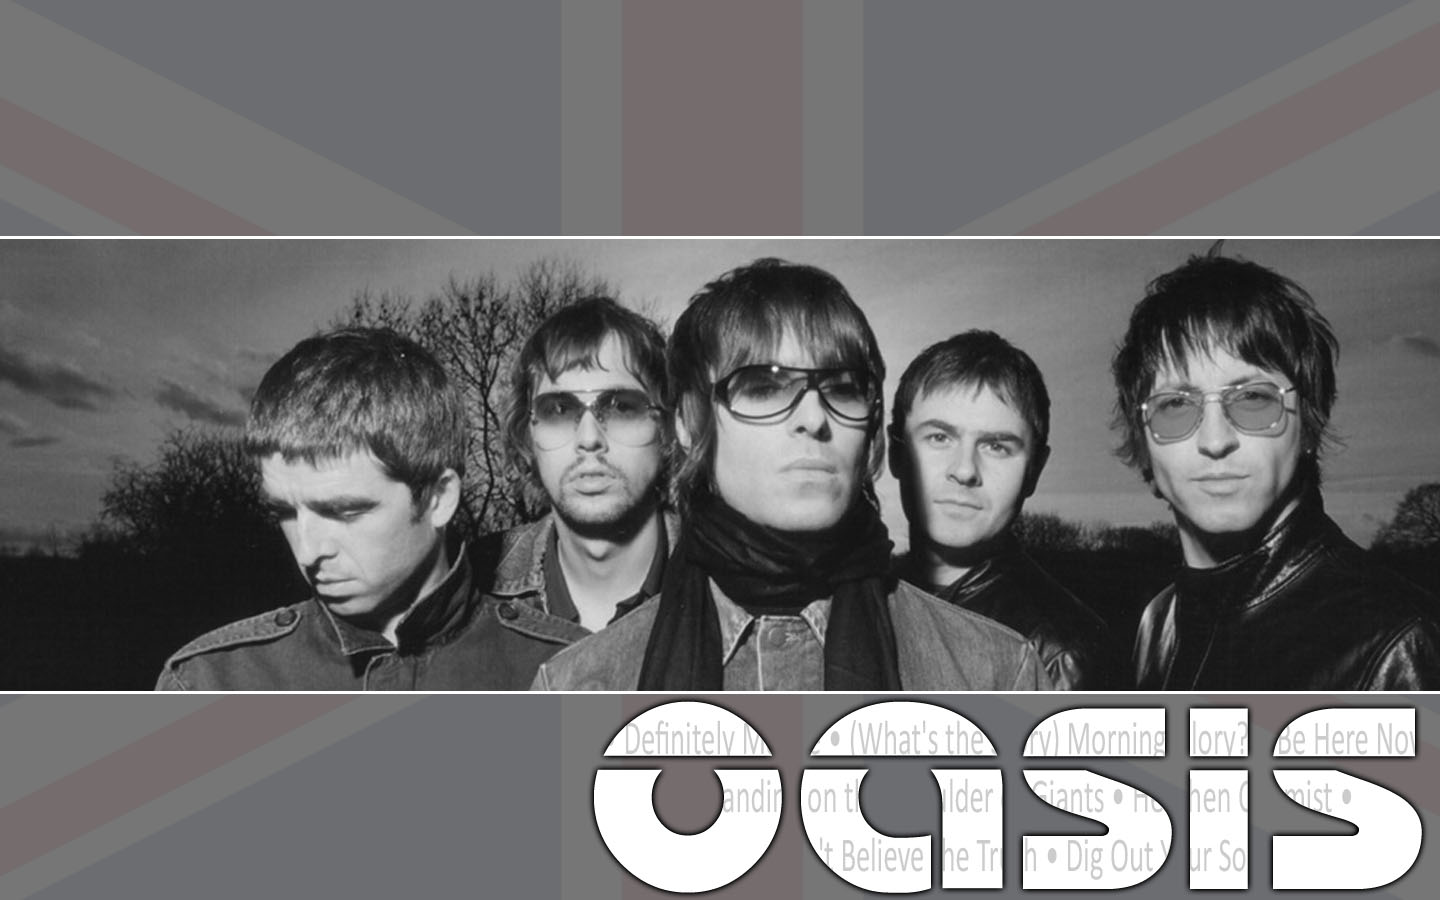 oasis band album cover oasis band background oasis logo queen band ... Oasis Band Album Cover